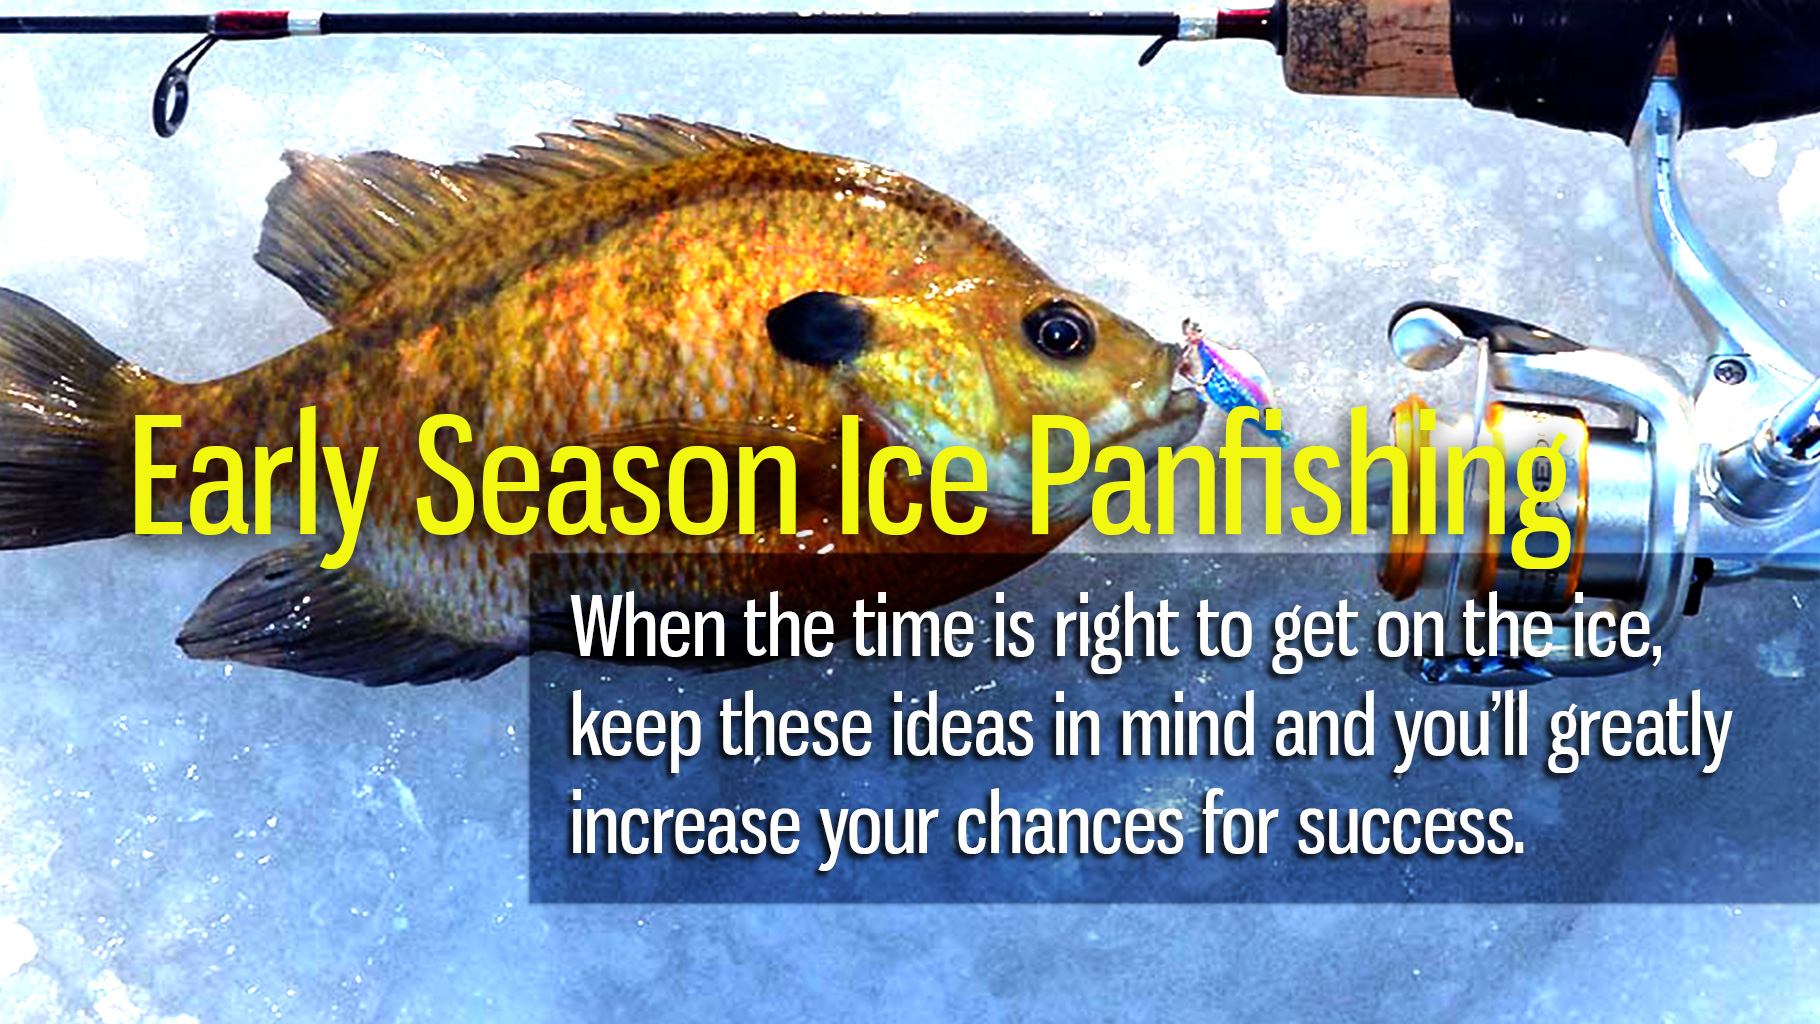 Early Season Ice Panfishing